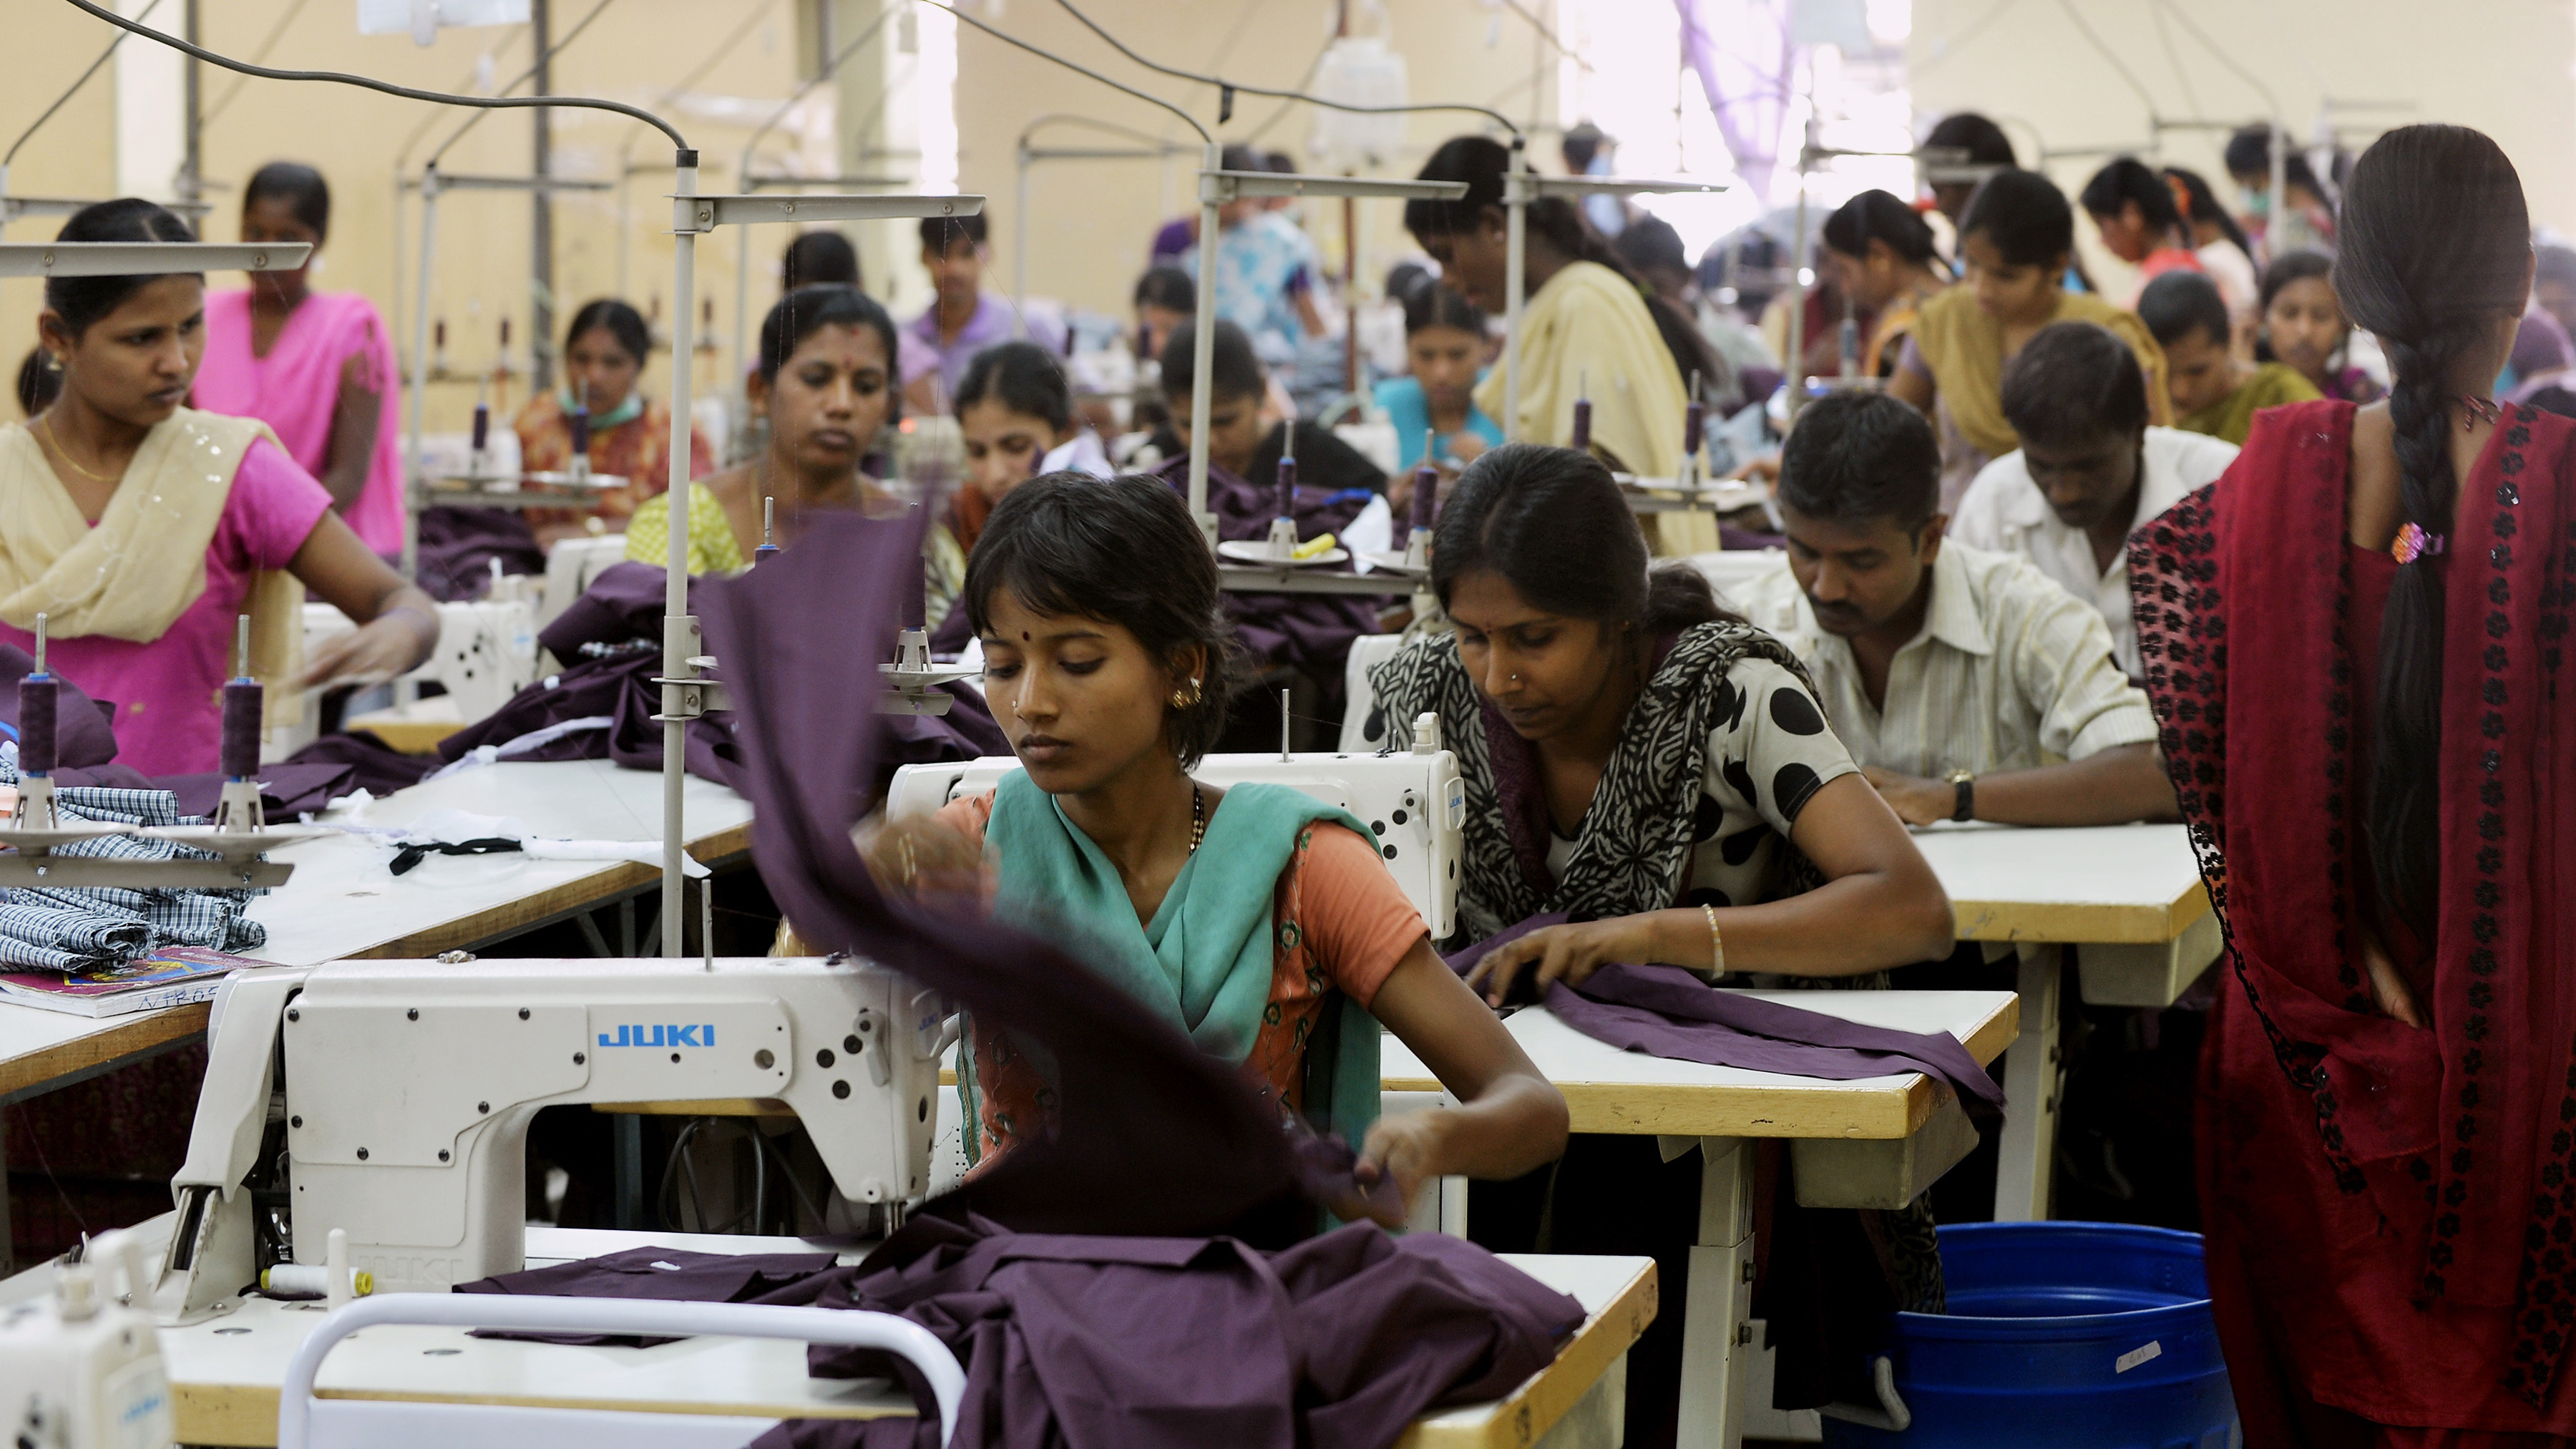 Indian workers of a private garment factory use machines while stitching apparel in Bangalore on November 21, 2012.